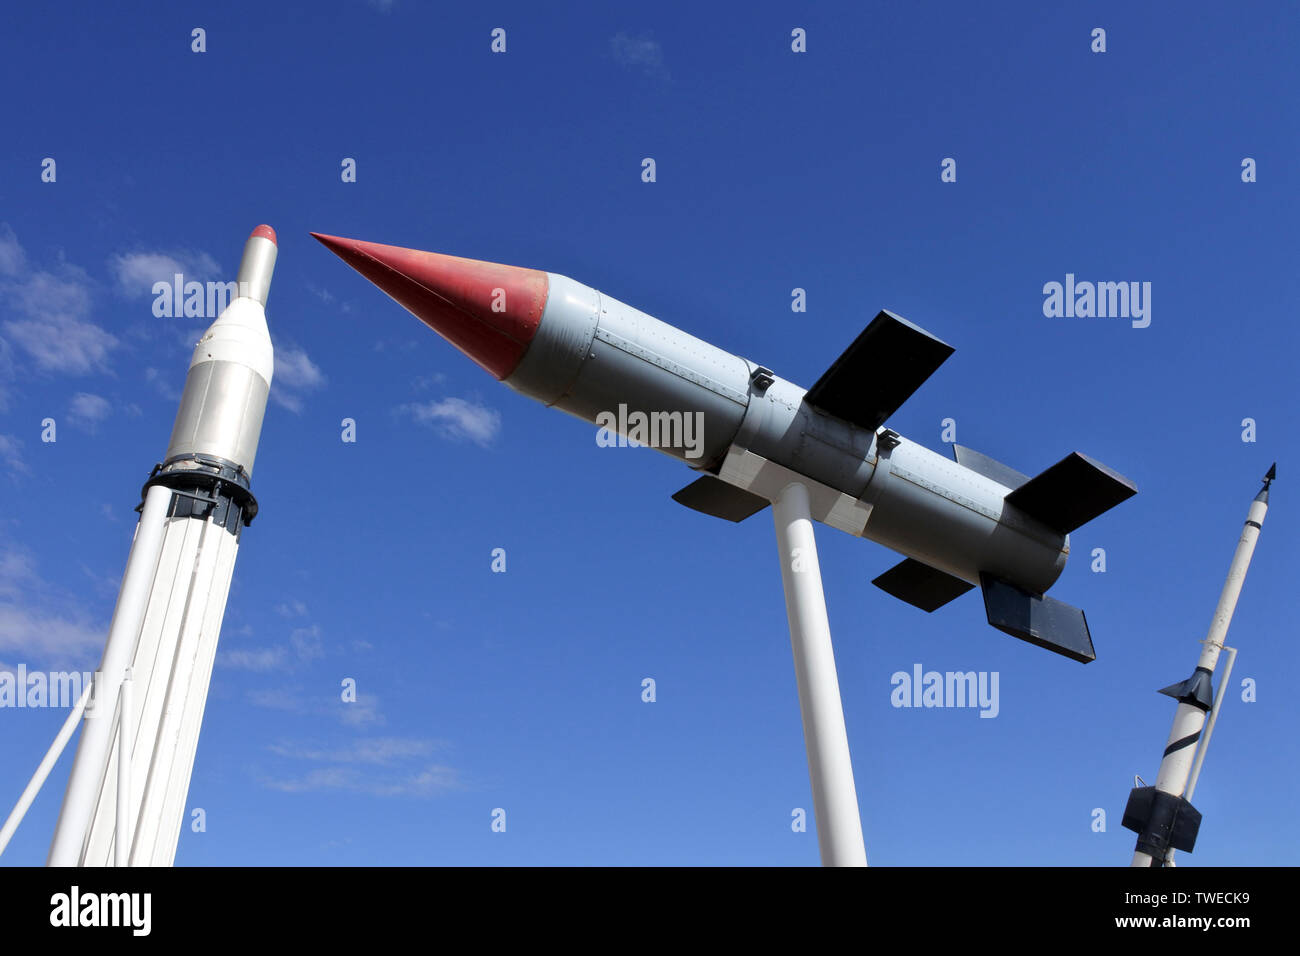 WOOMERA,SA - MAY 15 2019:Woomera Missile Park.Woomera town was home to personnel who worked between 1947-1980 in experimental station to test rockets, Stock Photo